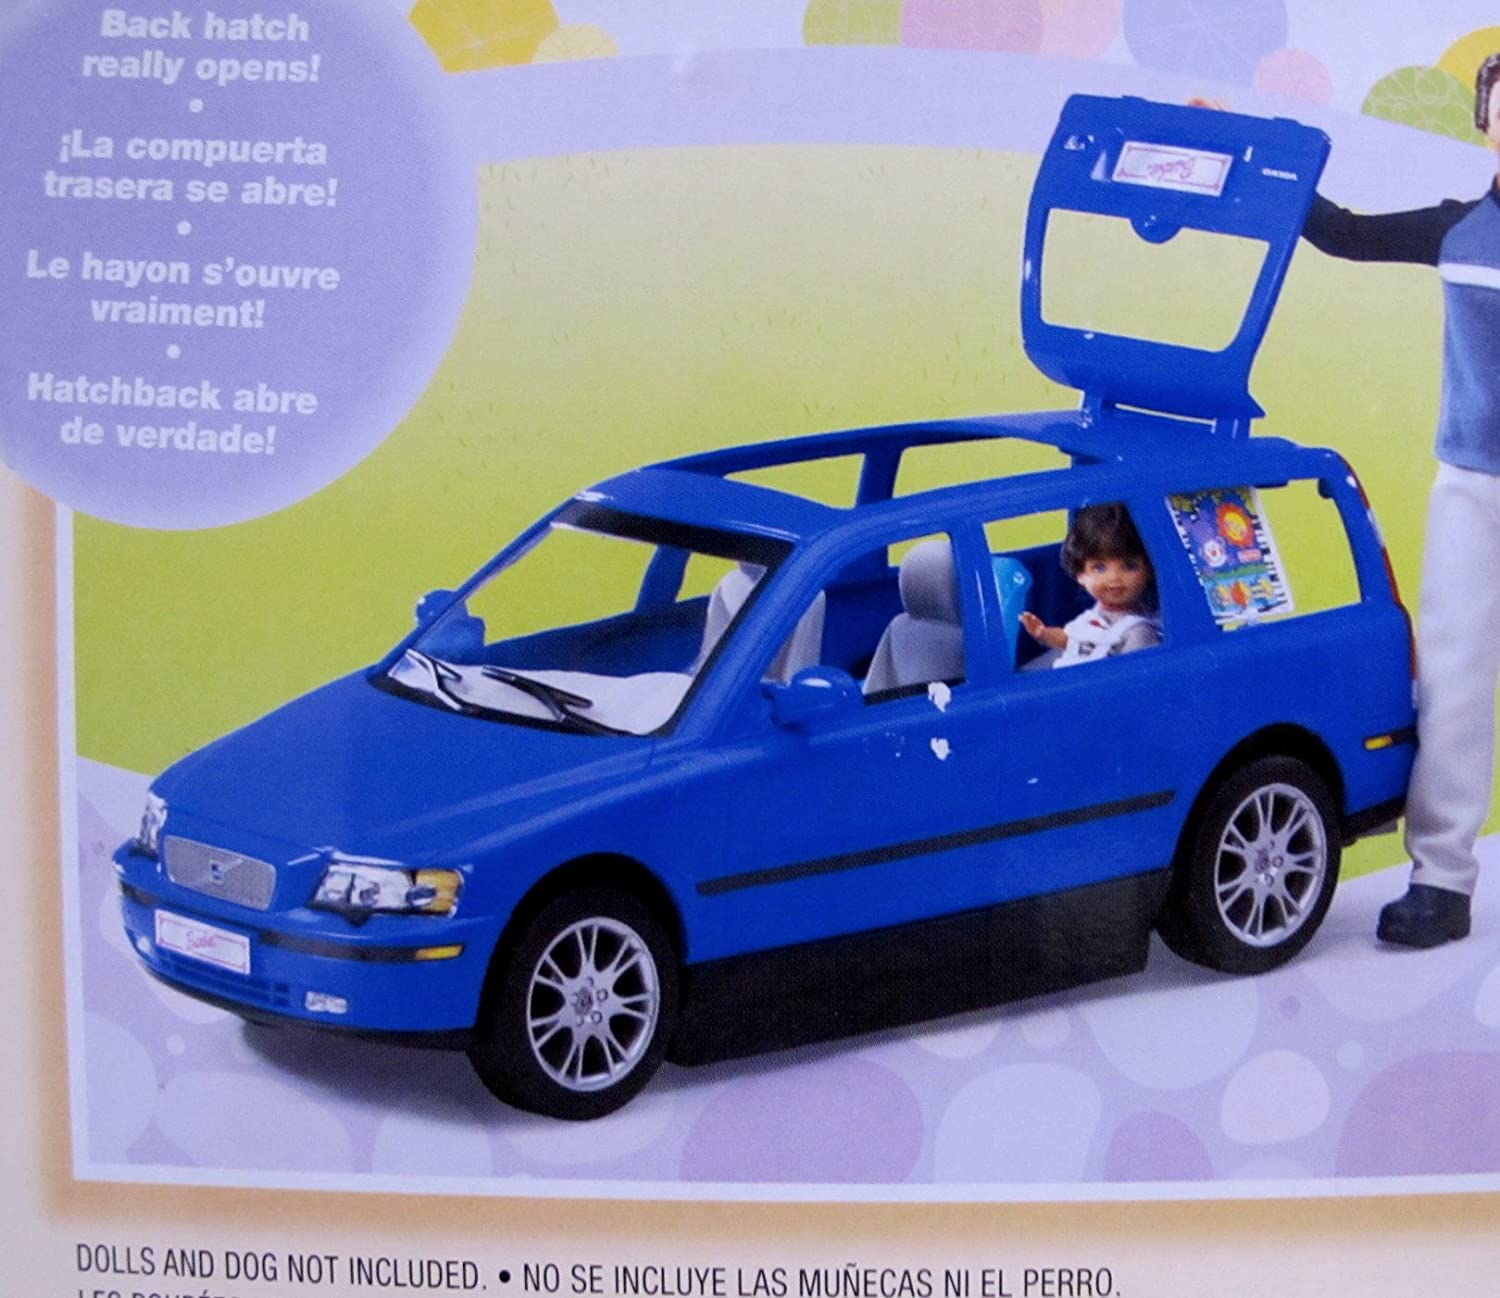 Amazon BARBIE Happy Family VOLVO V70 Vehicle VAN SUV W 2 CAR SEATS HATCH BACK Opens Closes More 2002 DARK BLUE Toys Games